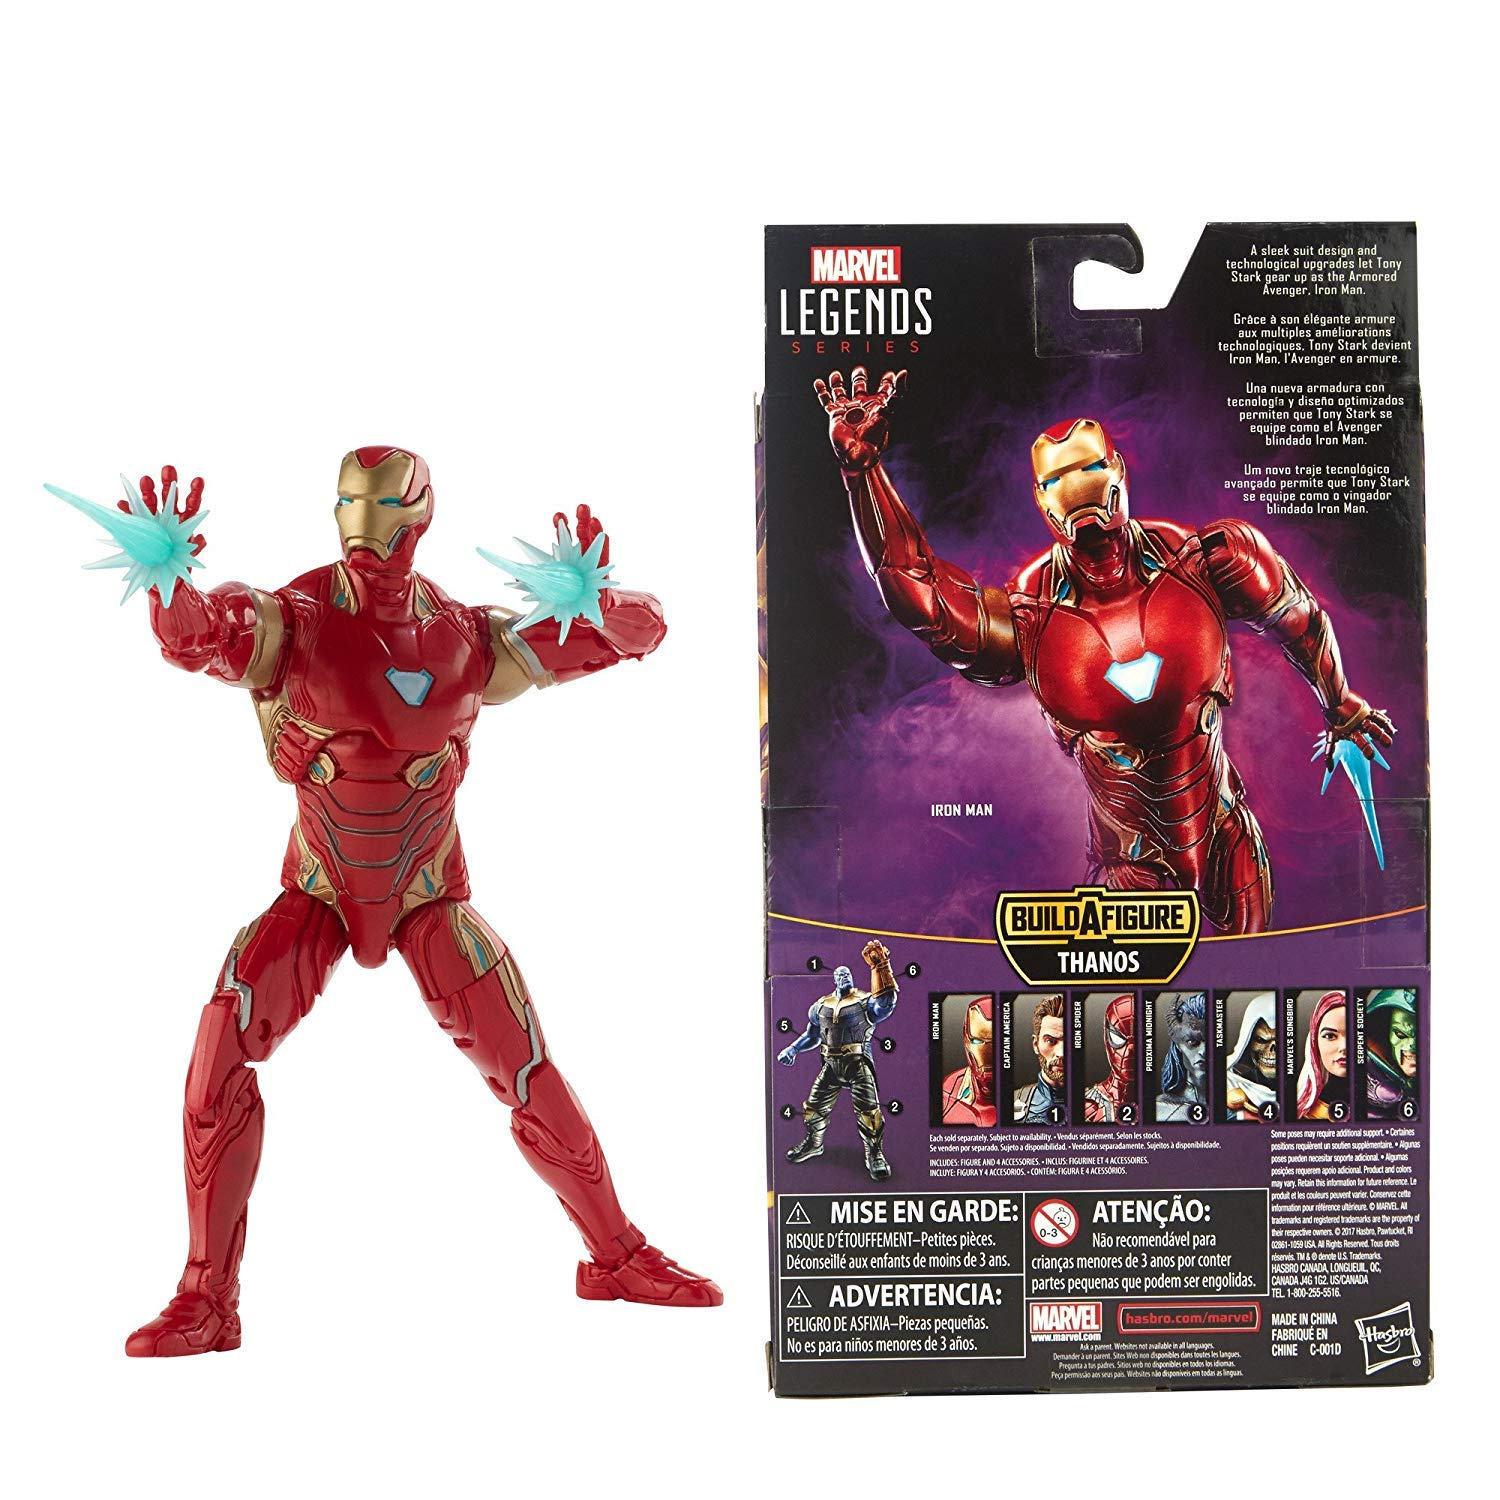 Amazon.com: Diamond Distributors Marvel Legends Series Avengers: Infinity War Iron Man Action Figure: Toys & Games